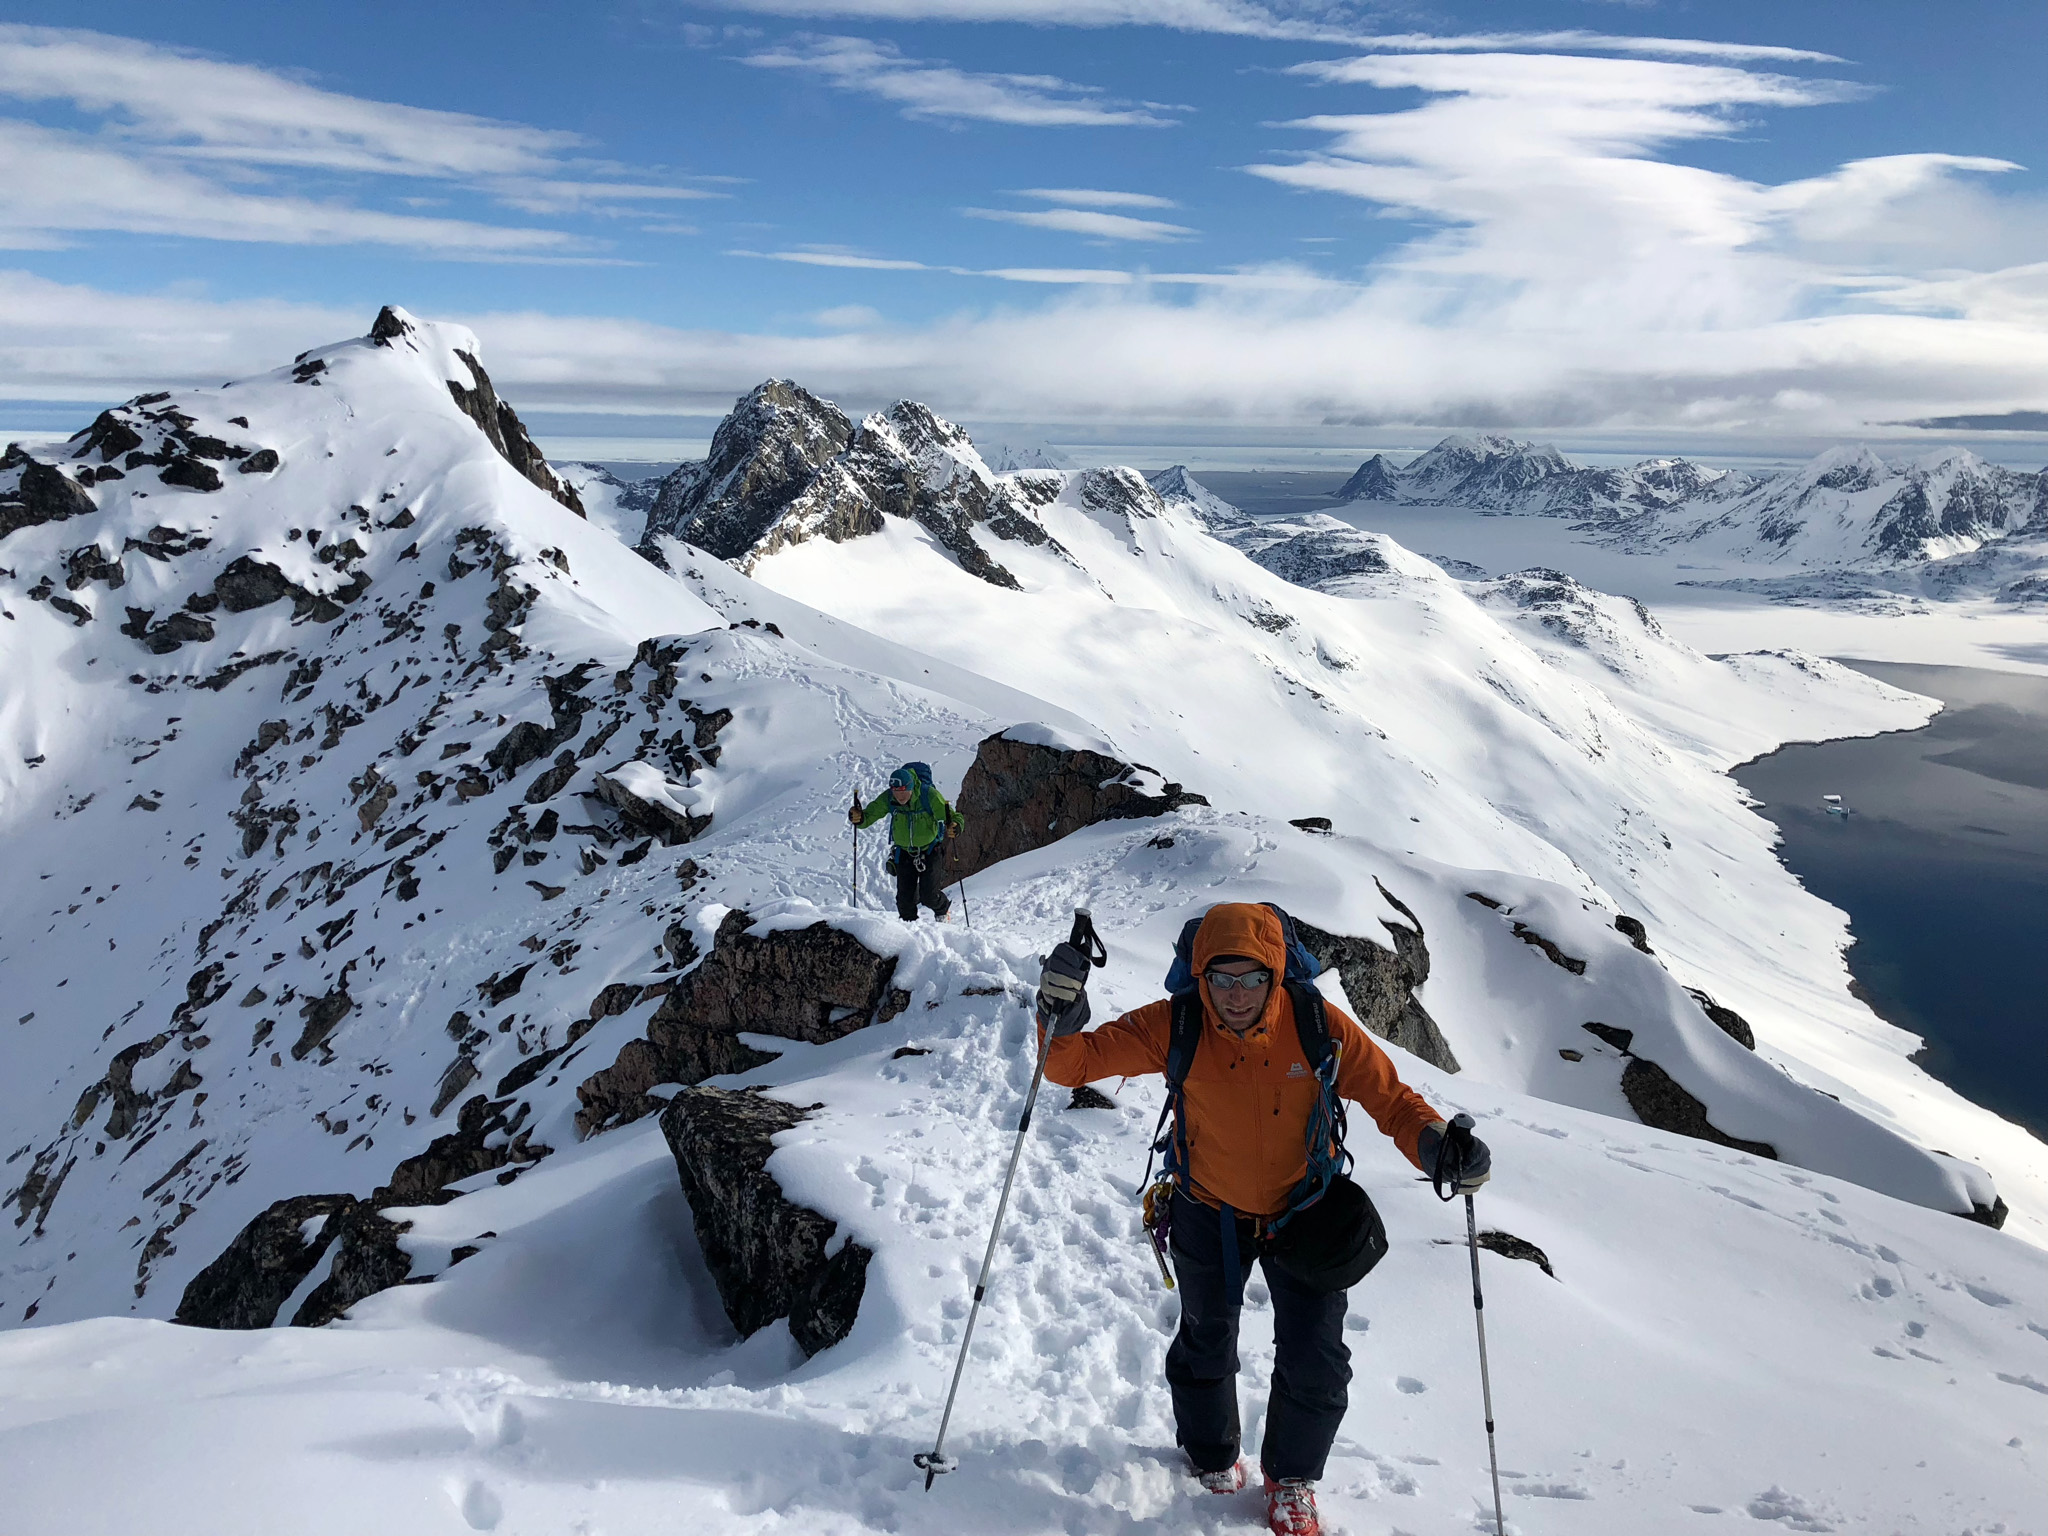 The team of six made the probable first ascents of 12 mountains. ©Andrew Denton